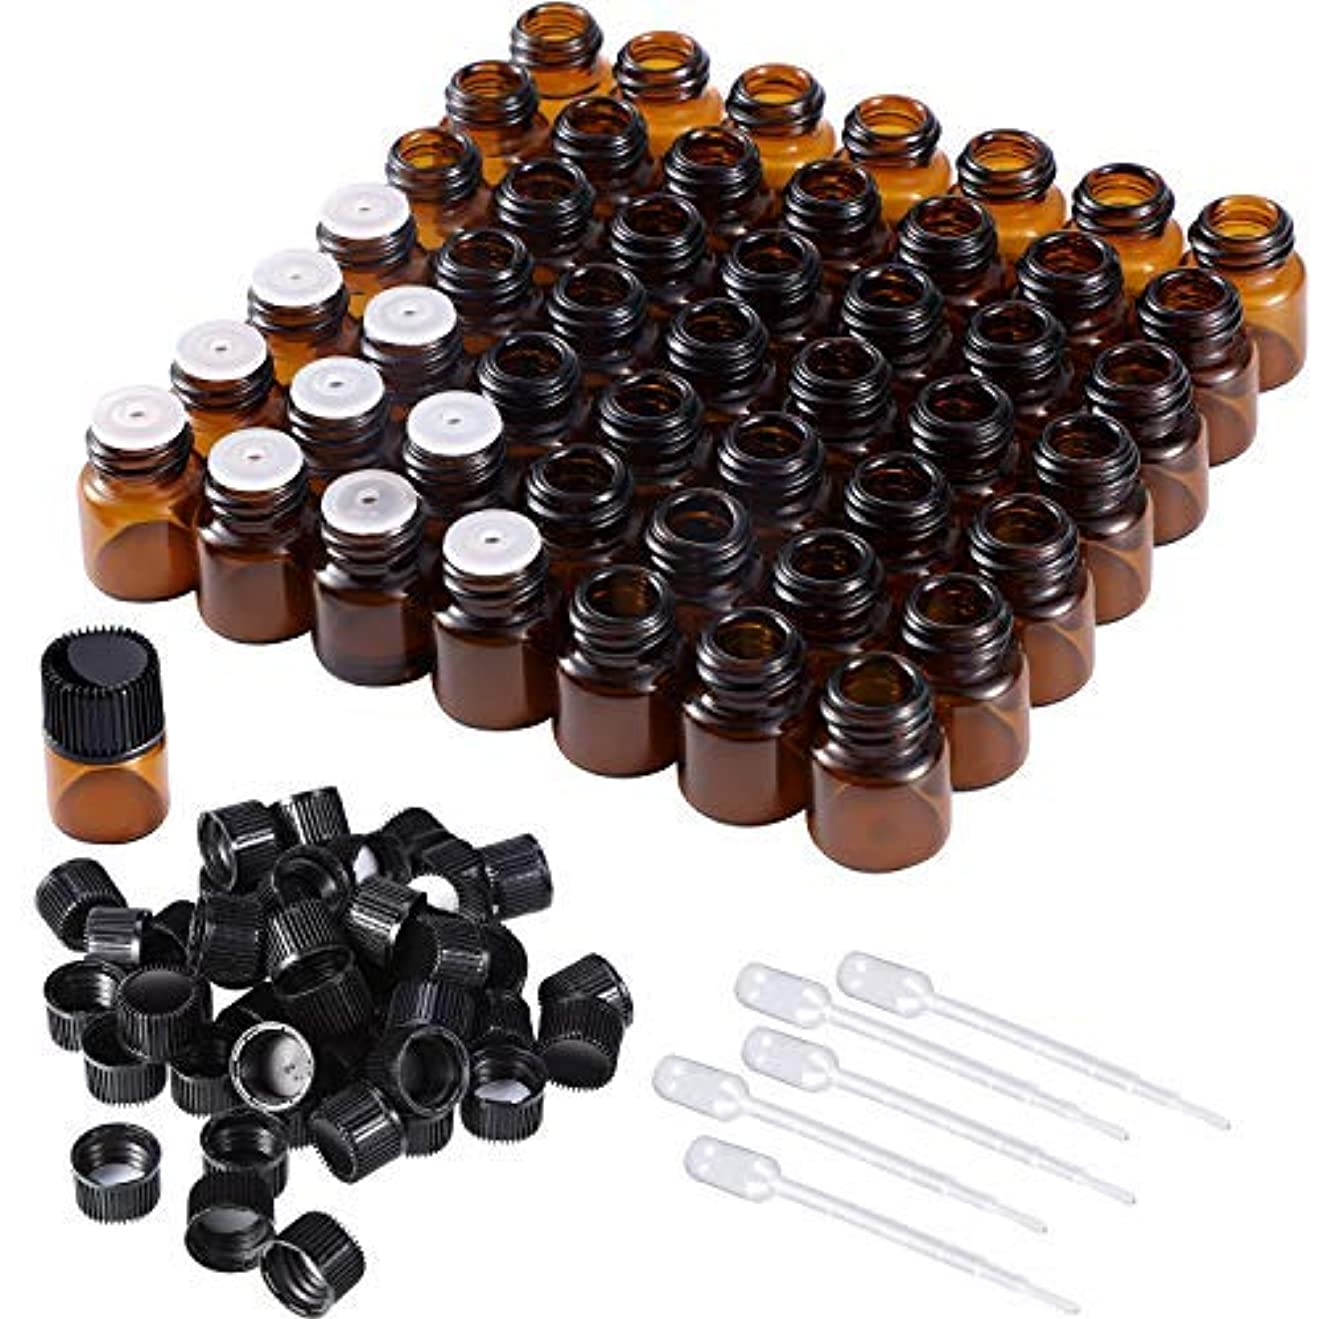 喜んで擬人結婚式50 Pieces 1 ml Mini Amber Glass Vial Bottles Essential Oil Bottles with Orifice Reducers Screw Caps and 5 Pieces Droppers for Essential Oils Storage [並行輸入品]